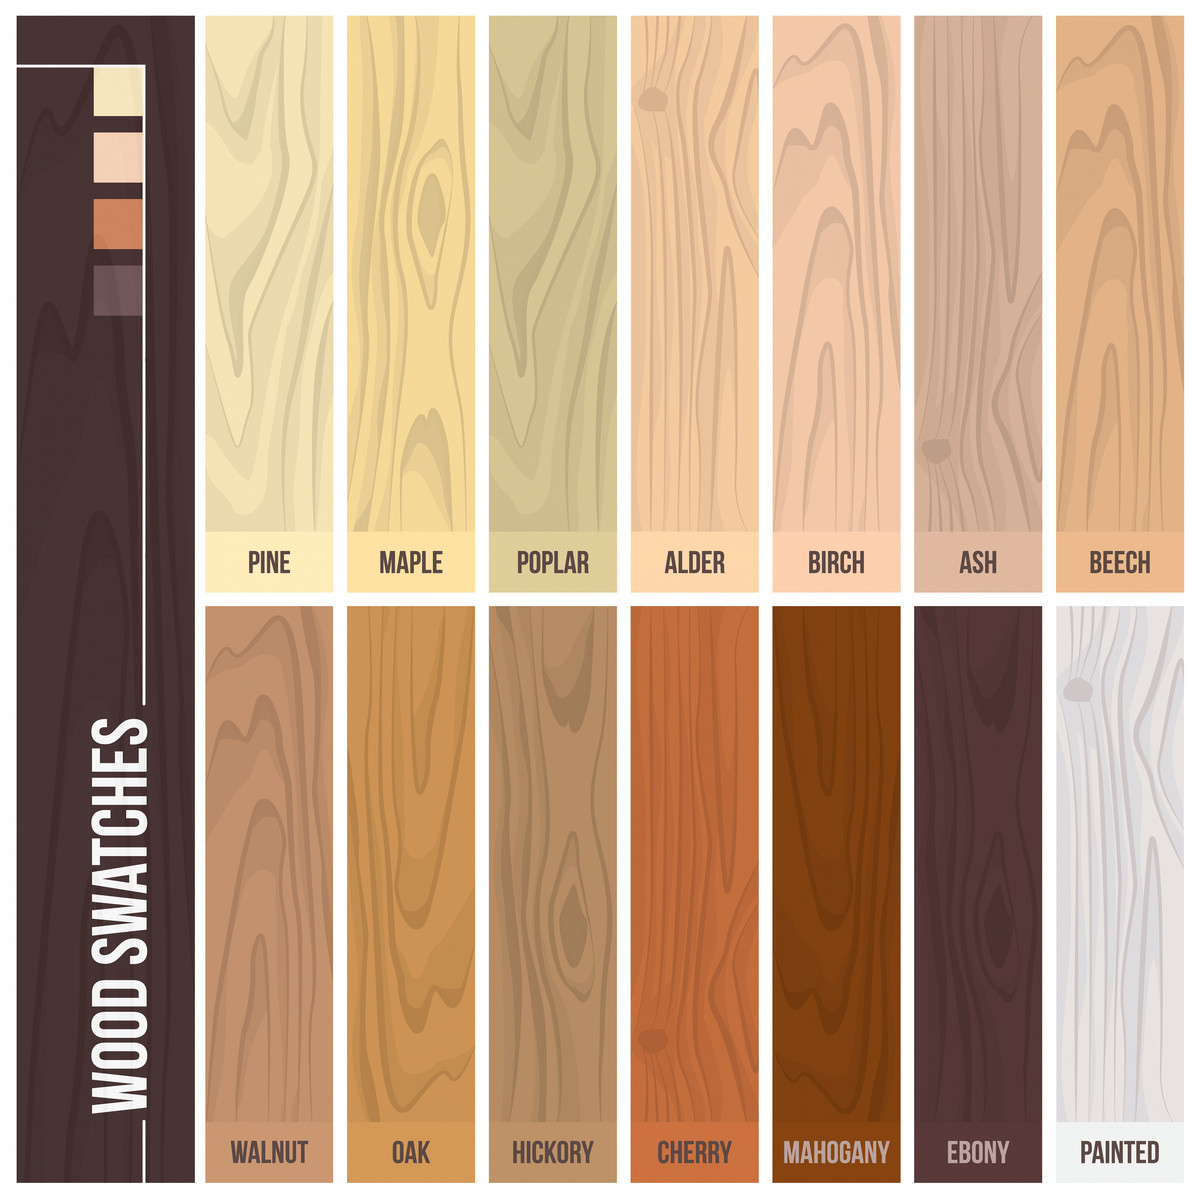 21 Stylish Refinish Hardwood Floors Yourself Video 2021 free download refinish hardwood floors yourself video of 12 types of hardwood flooring species styles edging dimensions intended for types of hardwood flooring illustrated guide